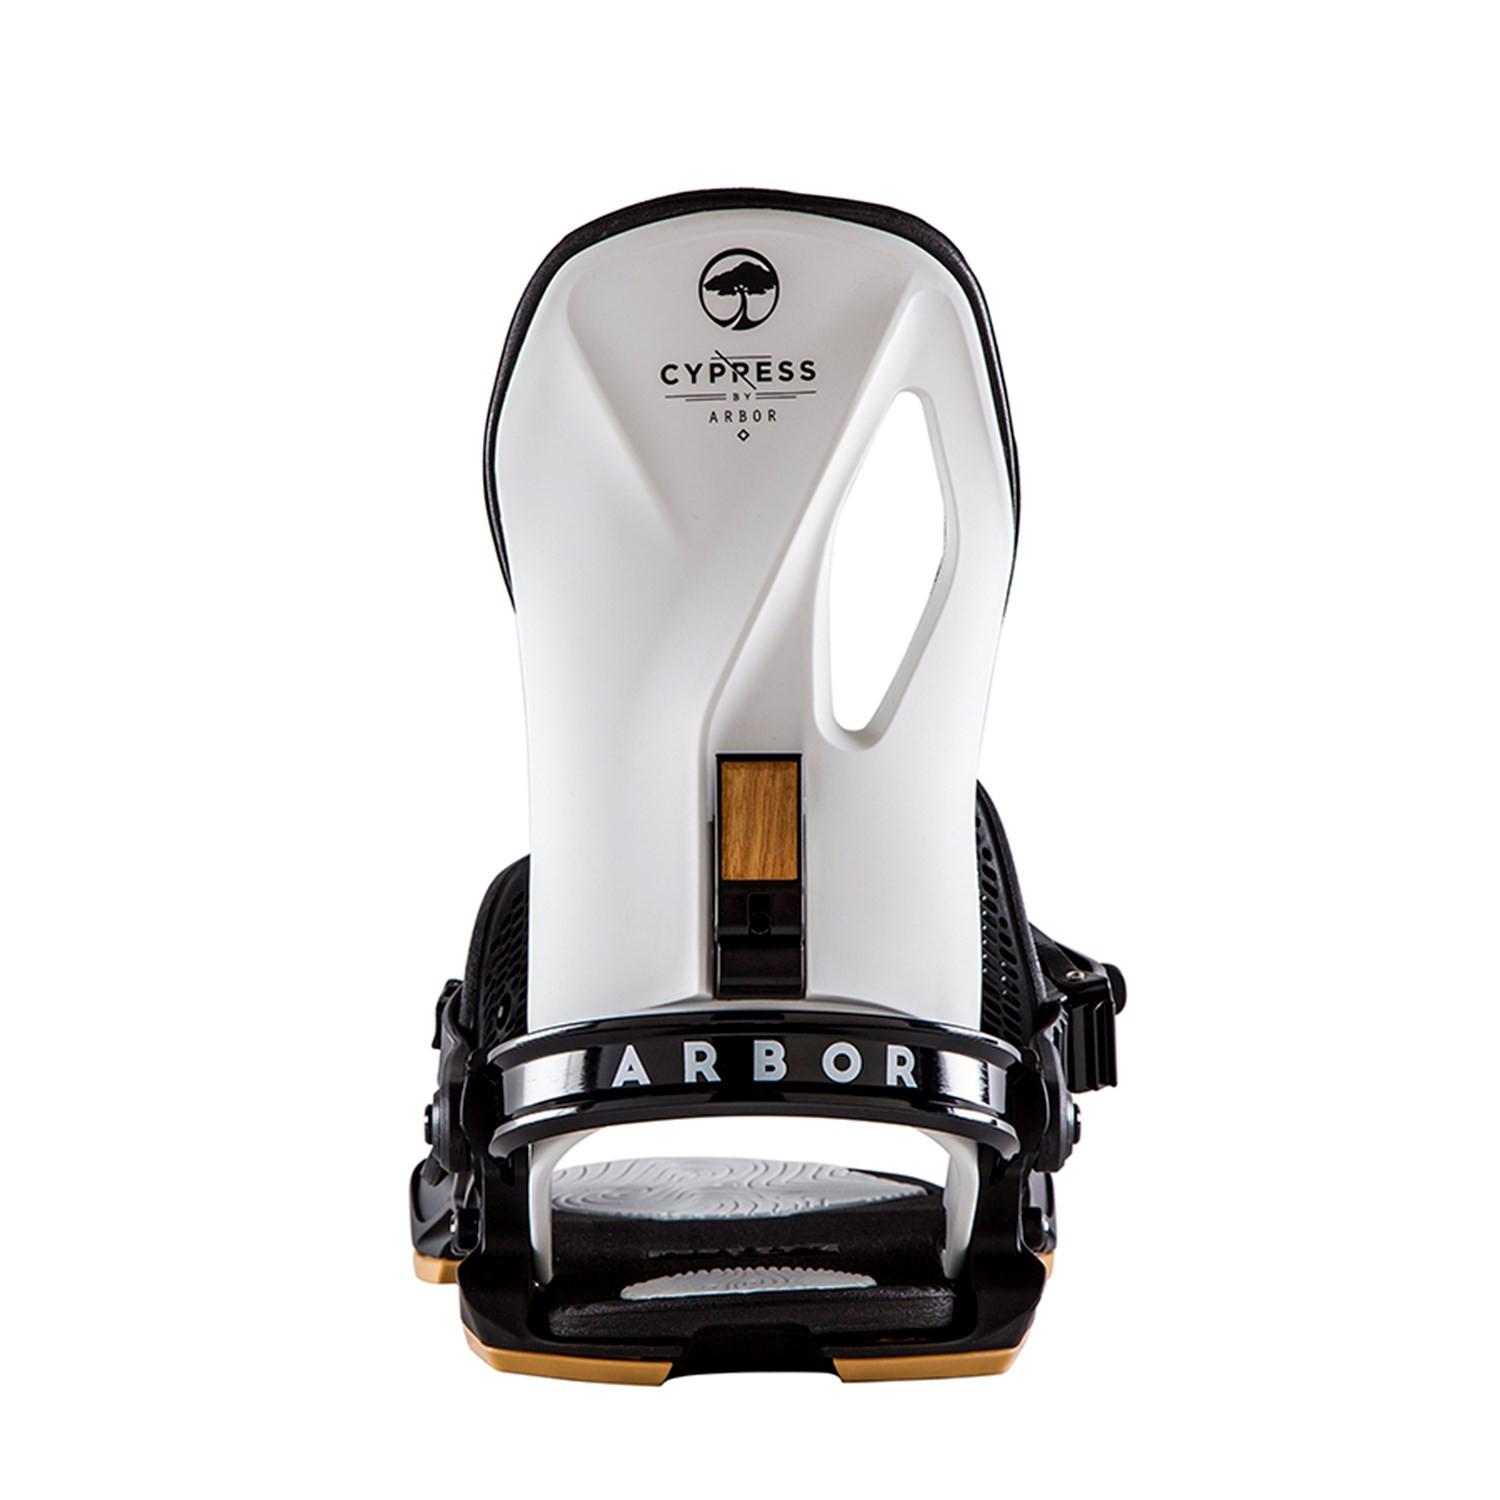 Arbor Cypress 2019 Snowboard Bindings